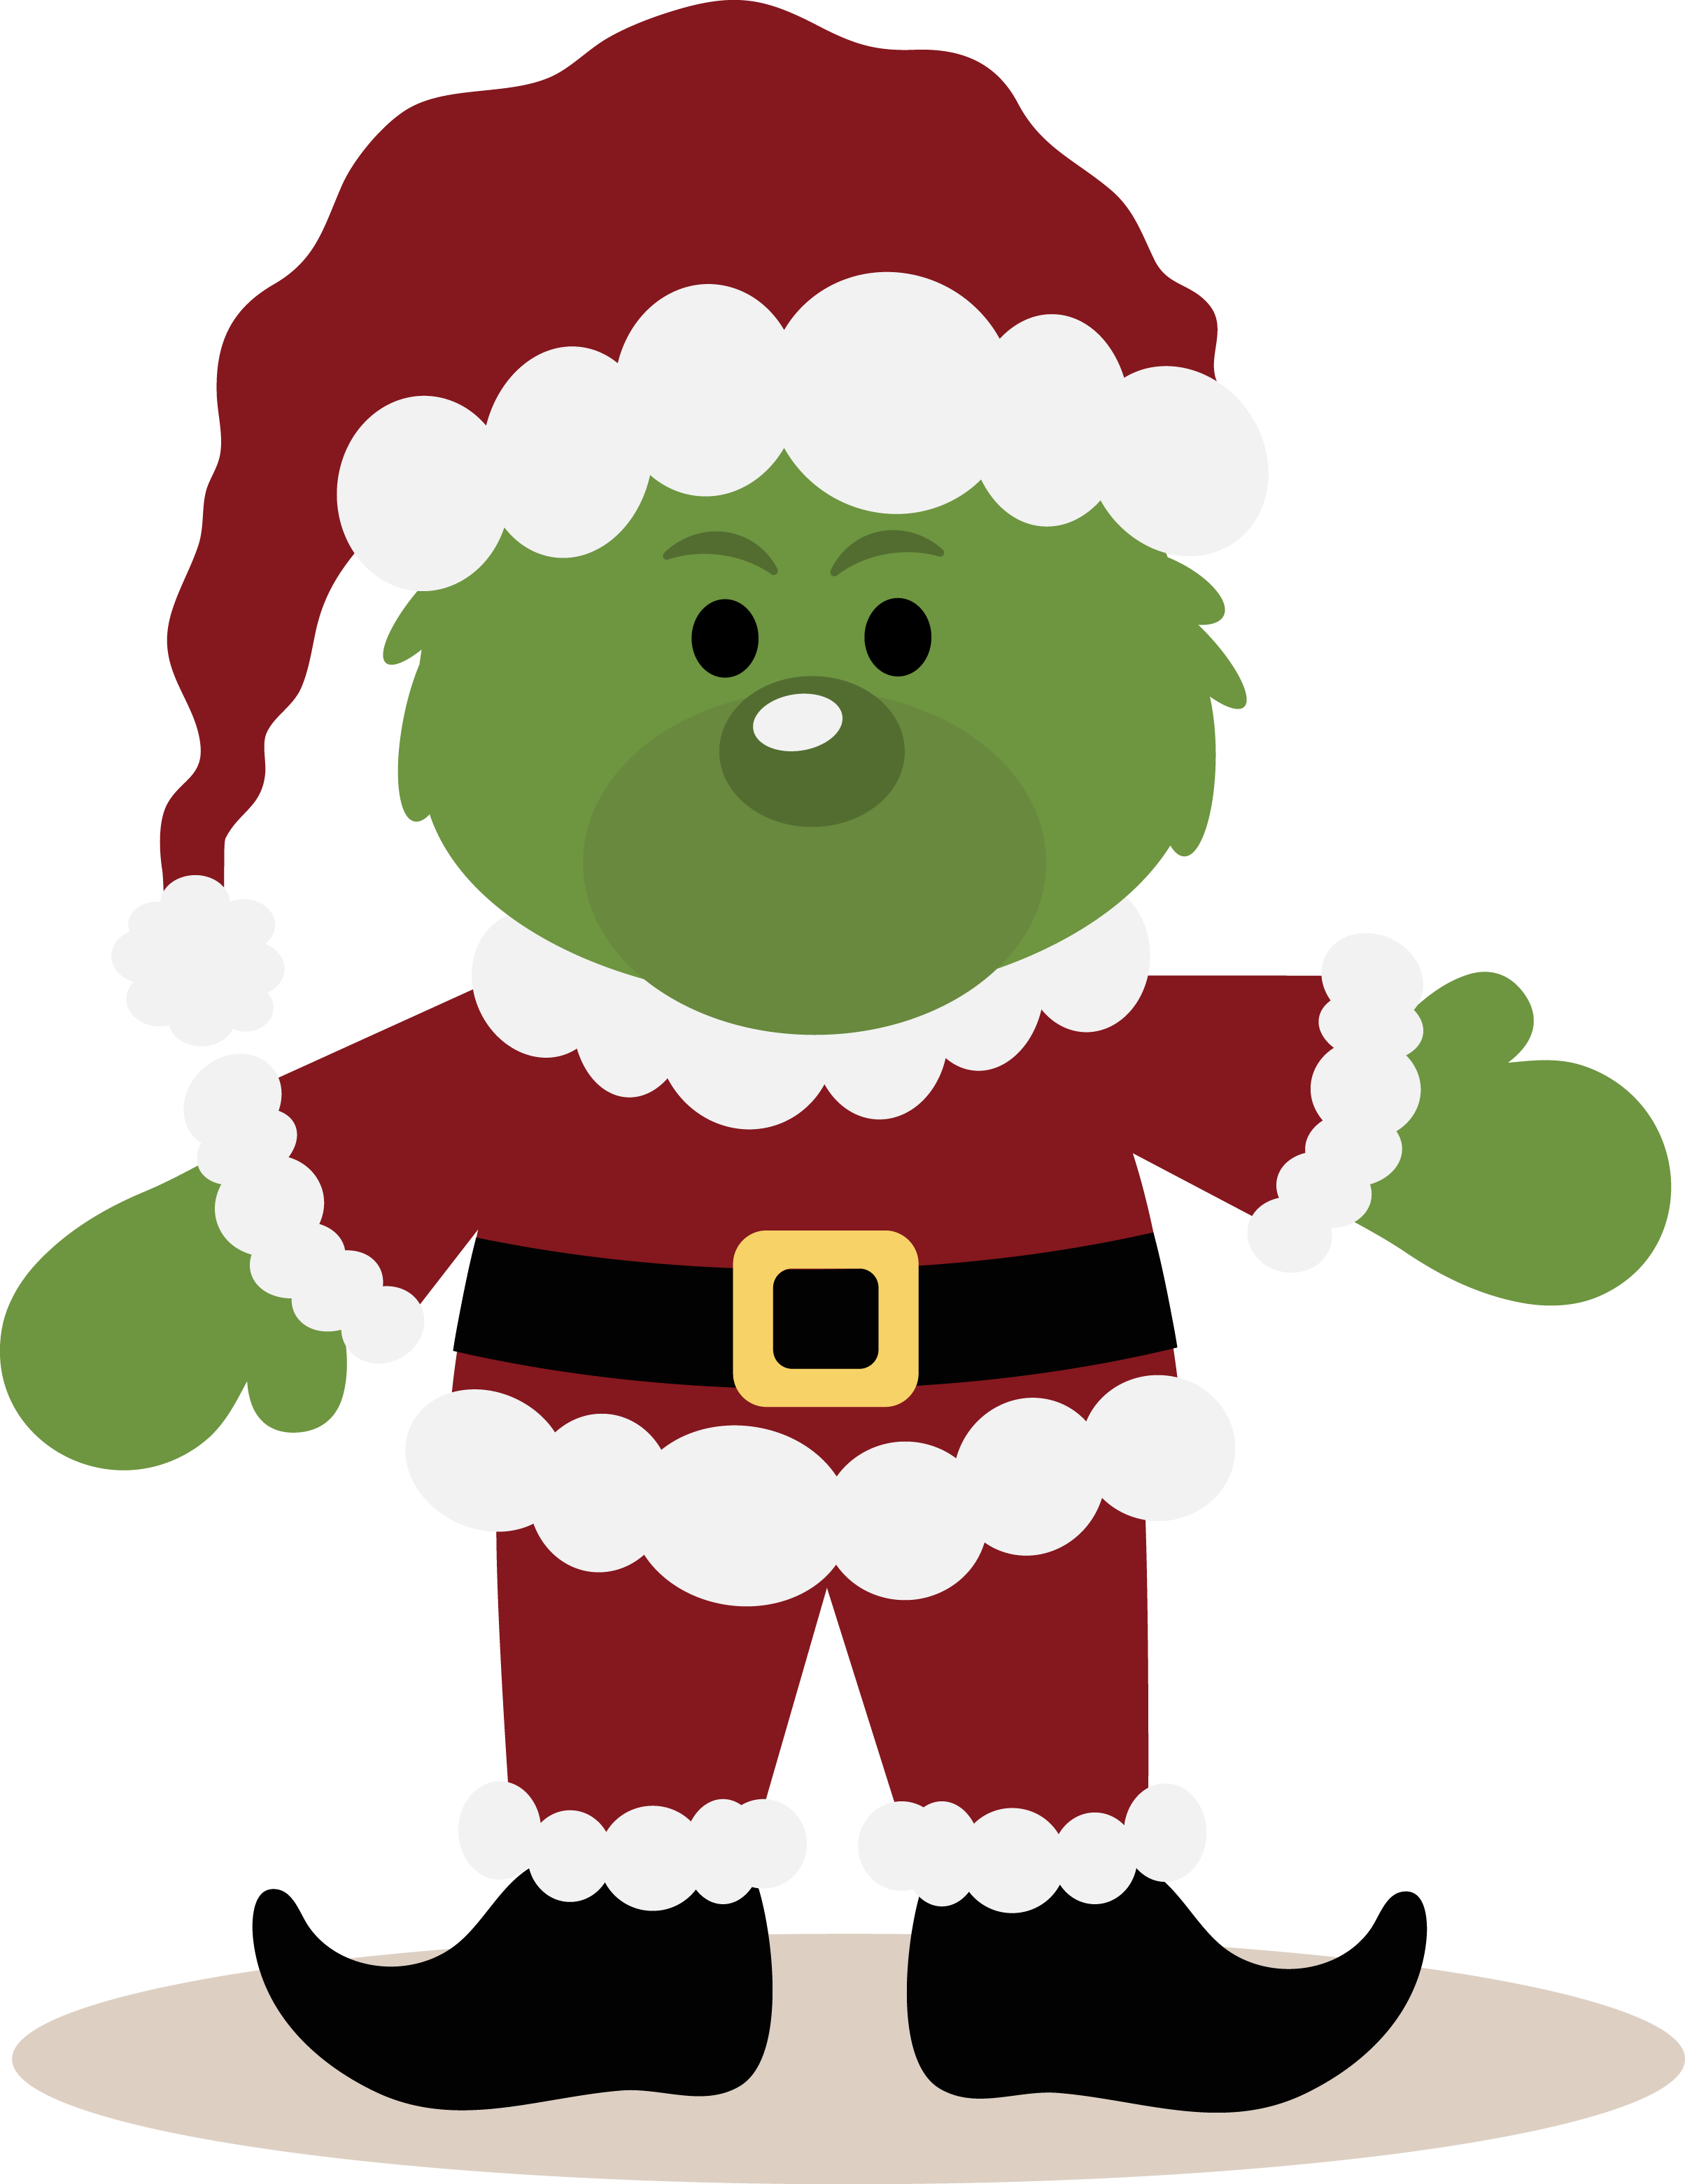 Grinch png silhouette. Pin by cynthia gustashaw